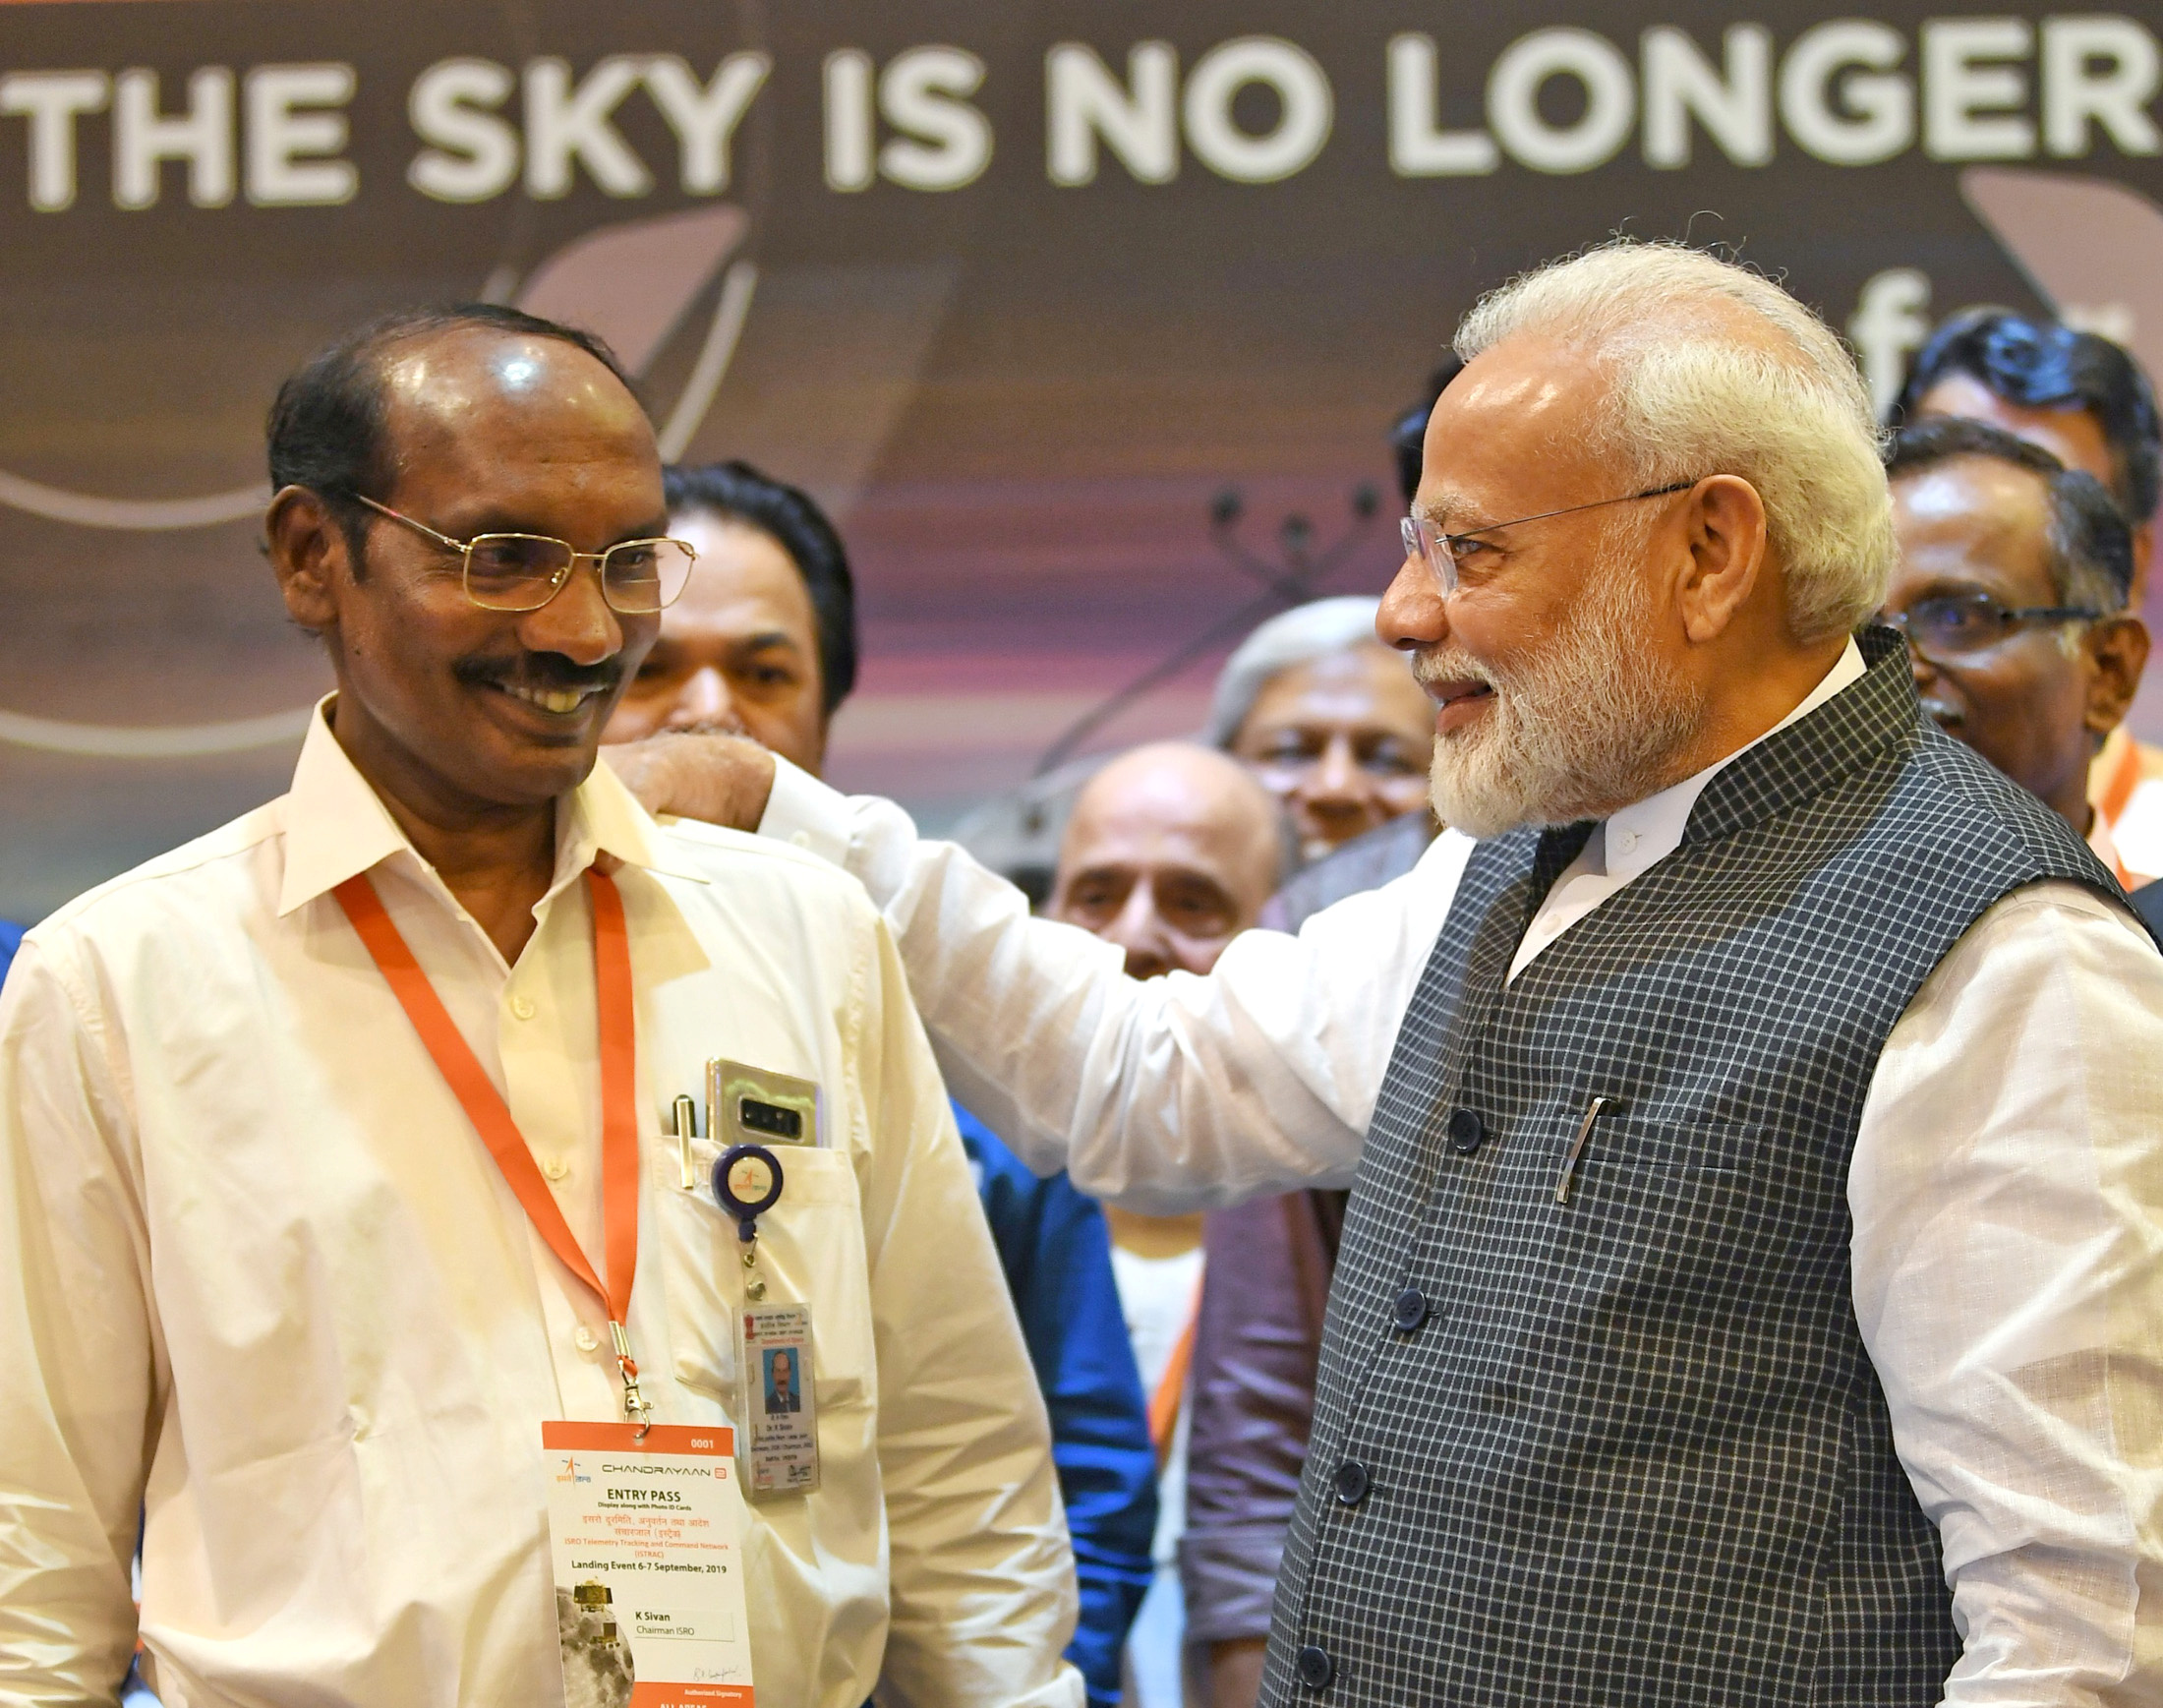 India's Prime Minister Narendra Modi talks to Kailasavadivoo Sivan, chairperson of the Indian Space Research Organization (ISRO) at their headquarters in Bengaluru